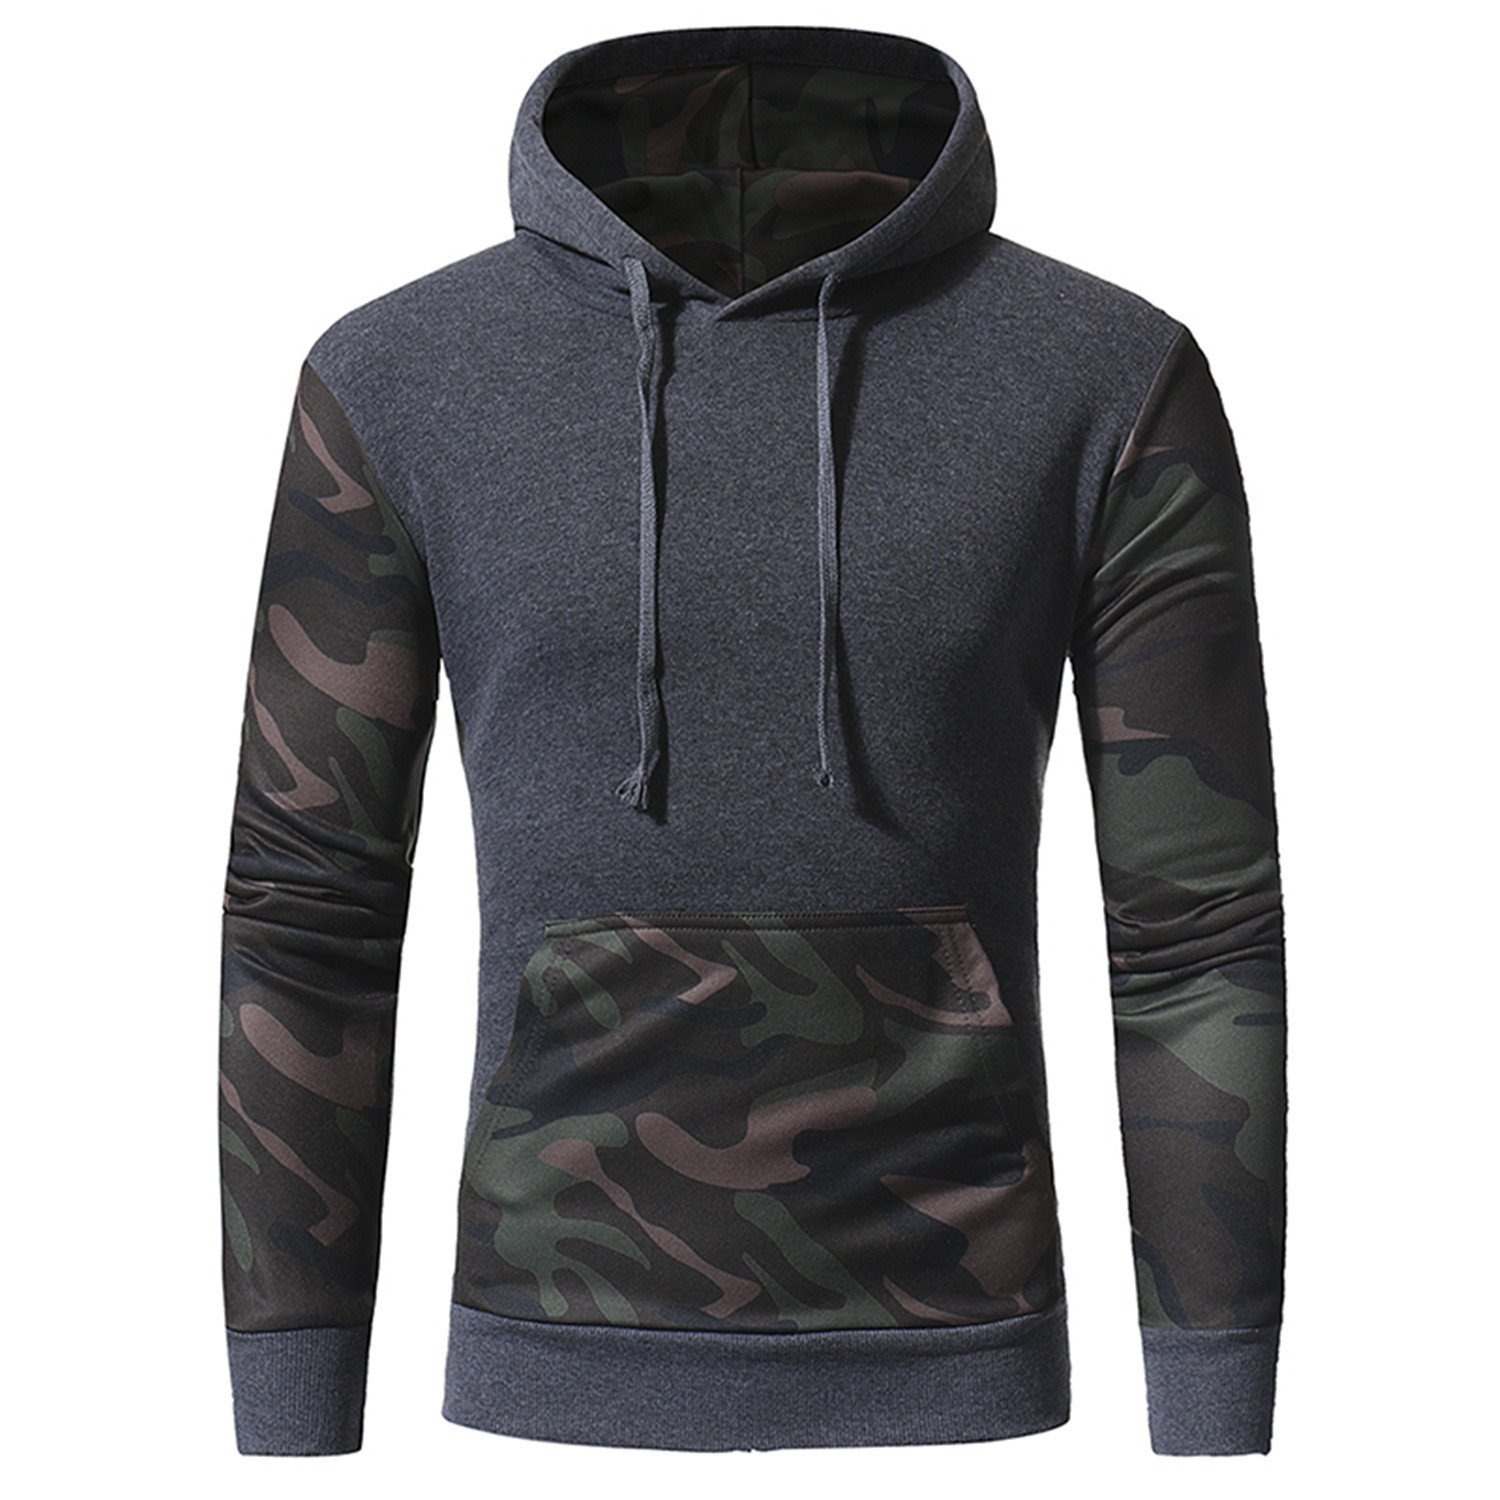 Amazon.com: RENXINGLIN Cosy Men Sudaderas Hombre Hip Hop Mens Camouflage hoodies Pullover hoodies sweashirt: Clothing